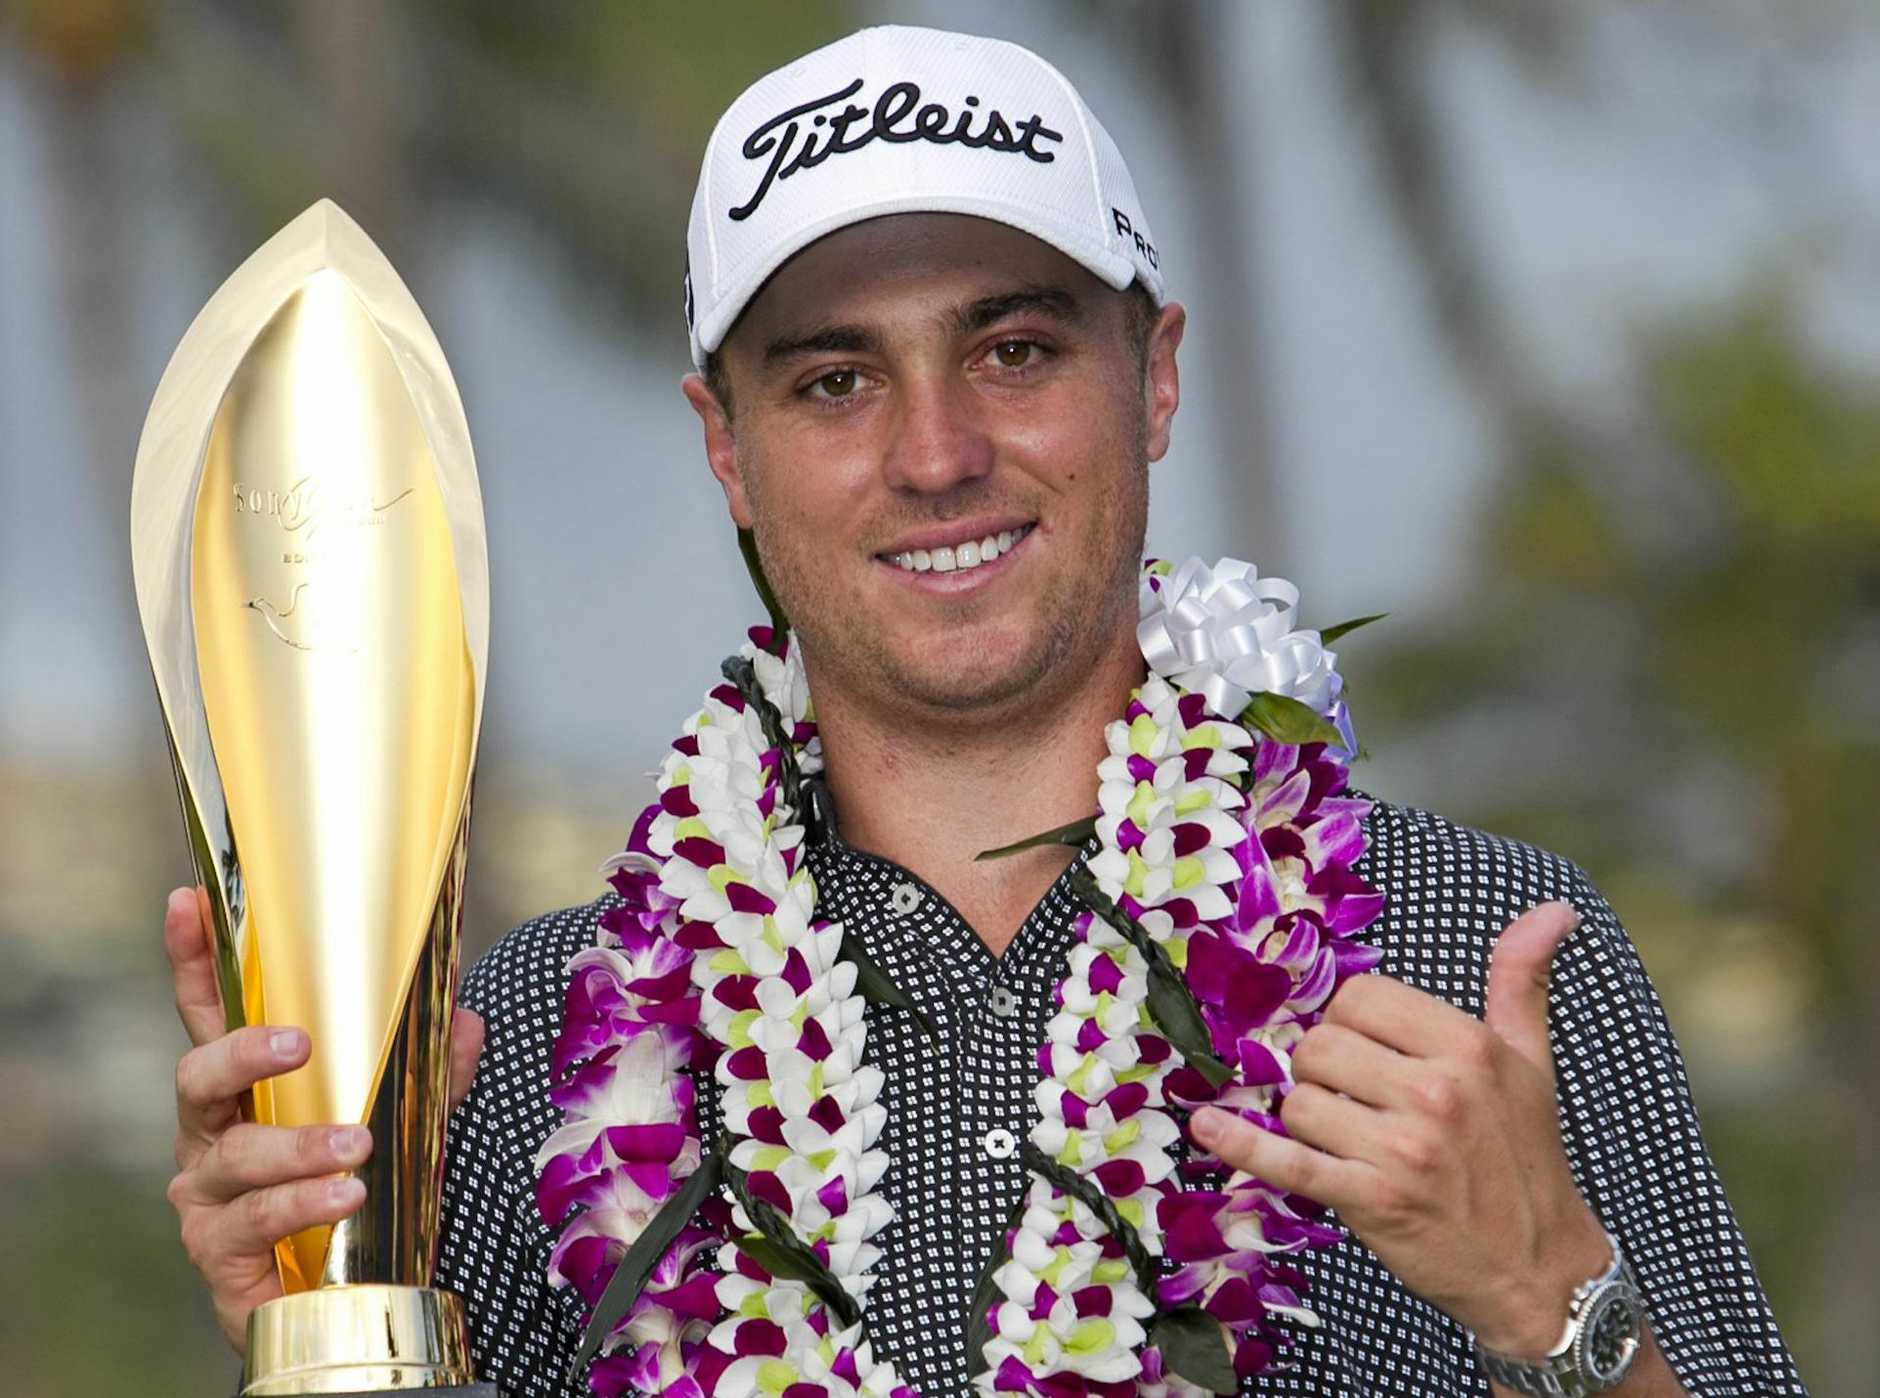 Justin Thomas holds the trophy after winning the Sony Open golf tournament.